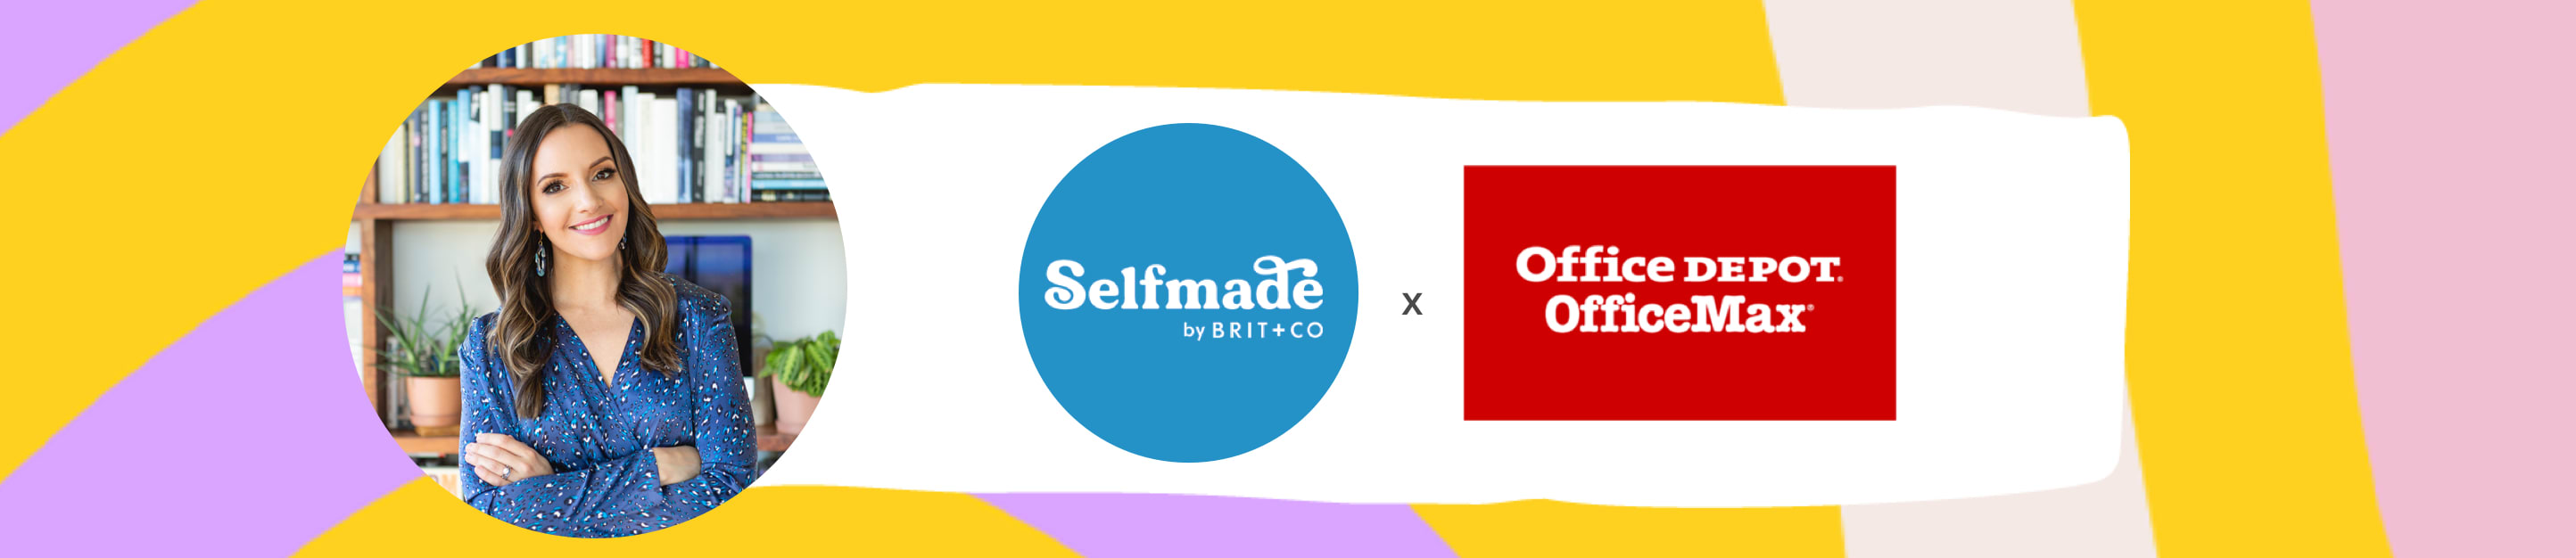 Selfmade scholarship signup business owner